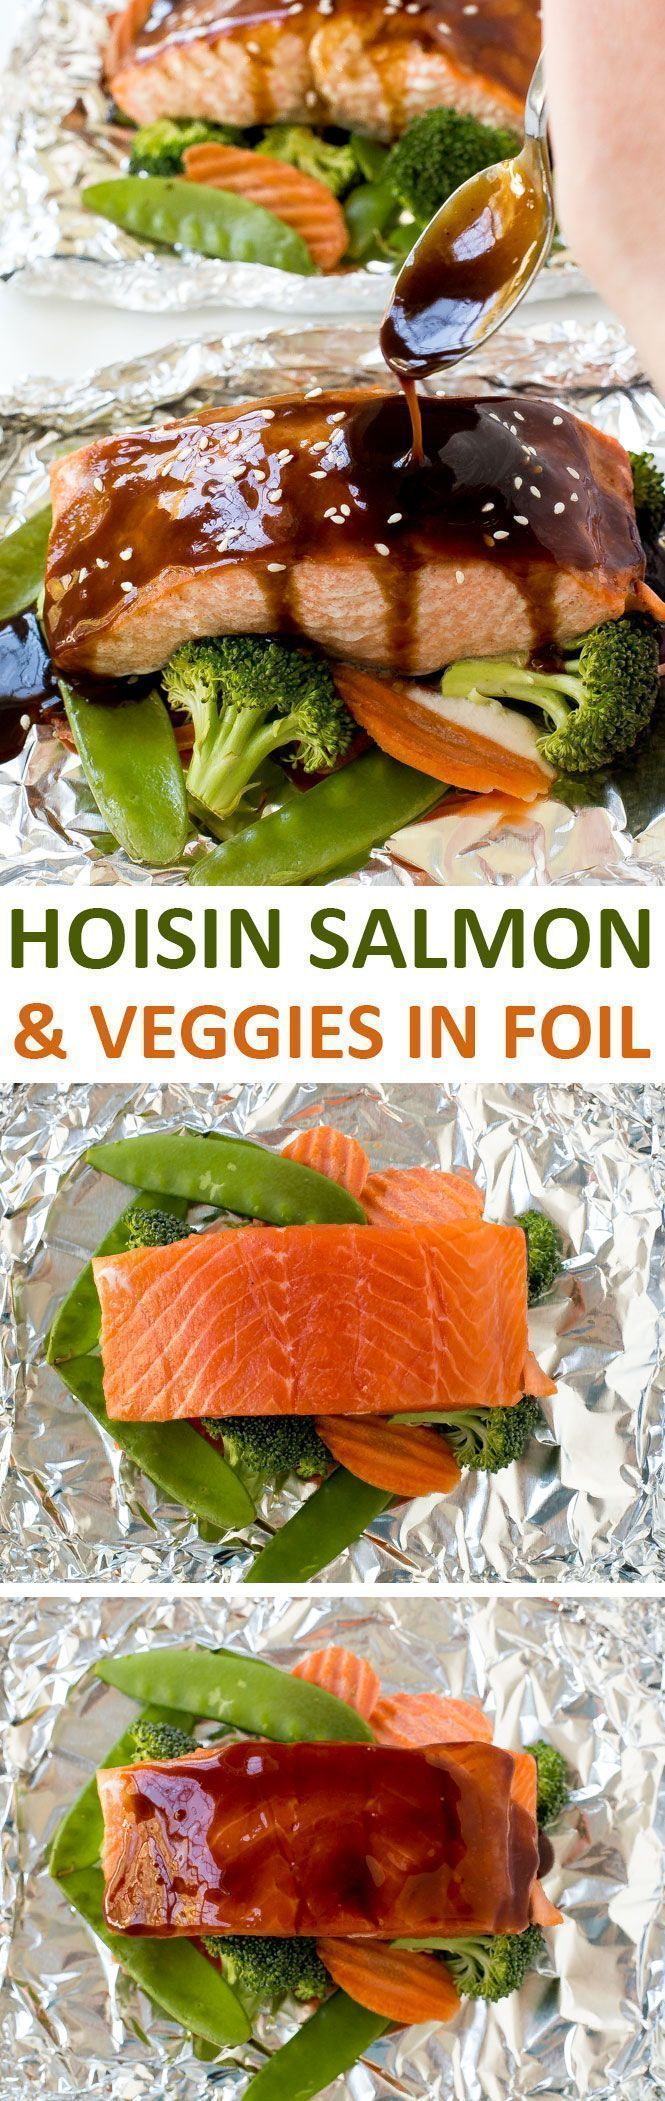 Hoisin Glazed Salmon and Veggies in foil baked to perfection and drizzled with an amazing 3 ingredient hoisin sauce! | chefsavvy.com #recipe #salmon #seafood #hoisin #asian